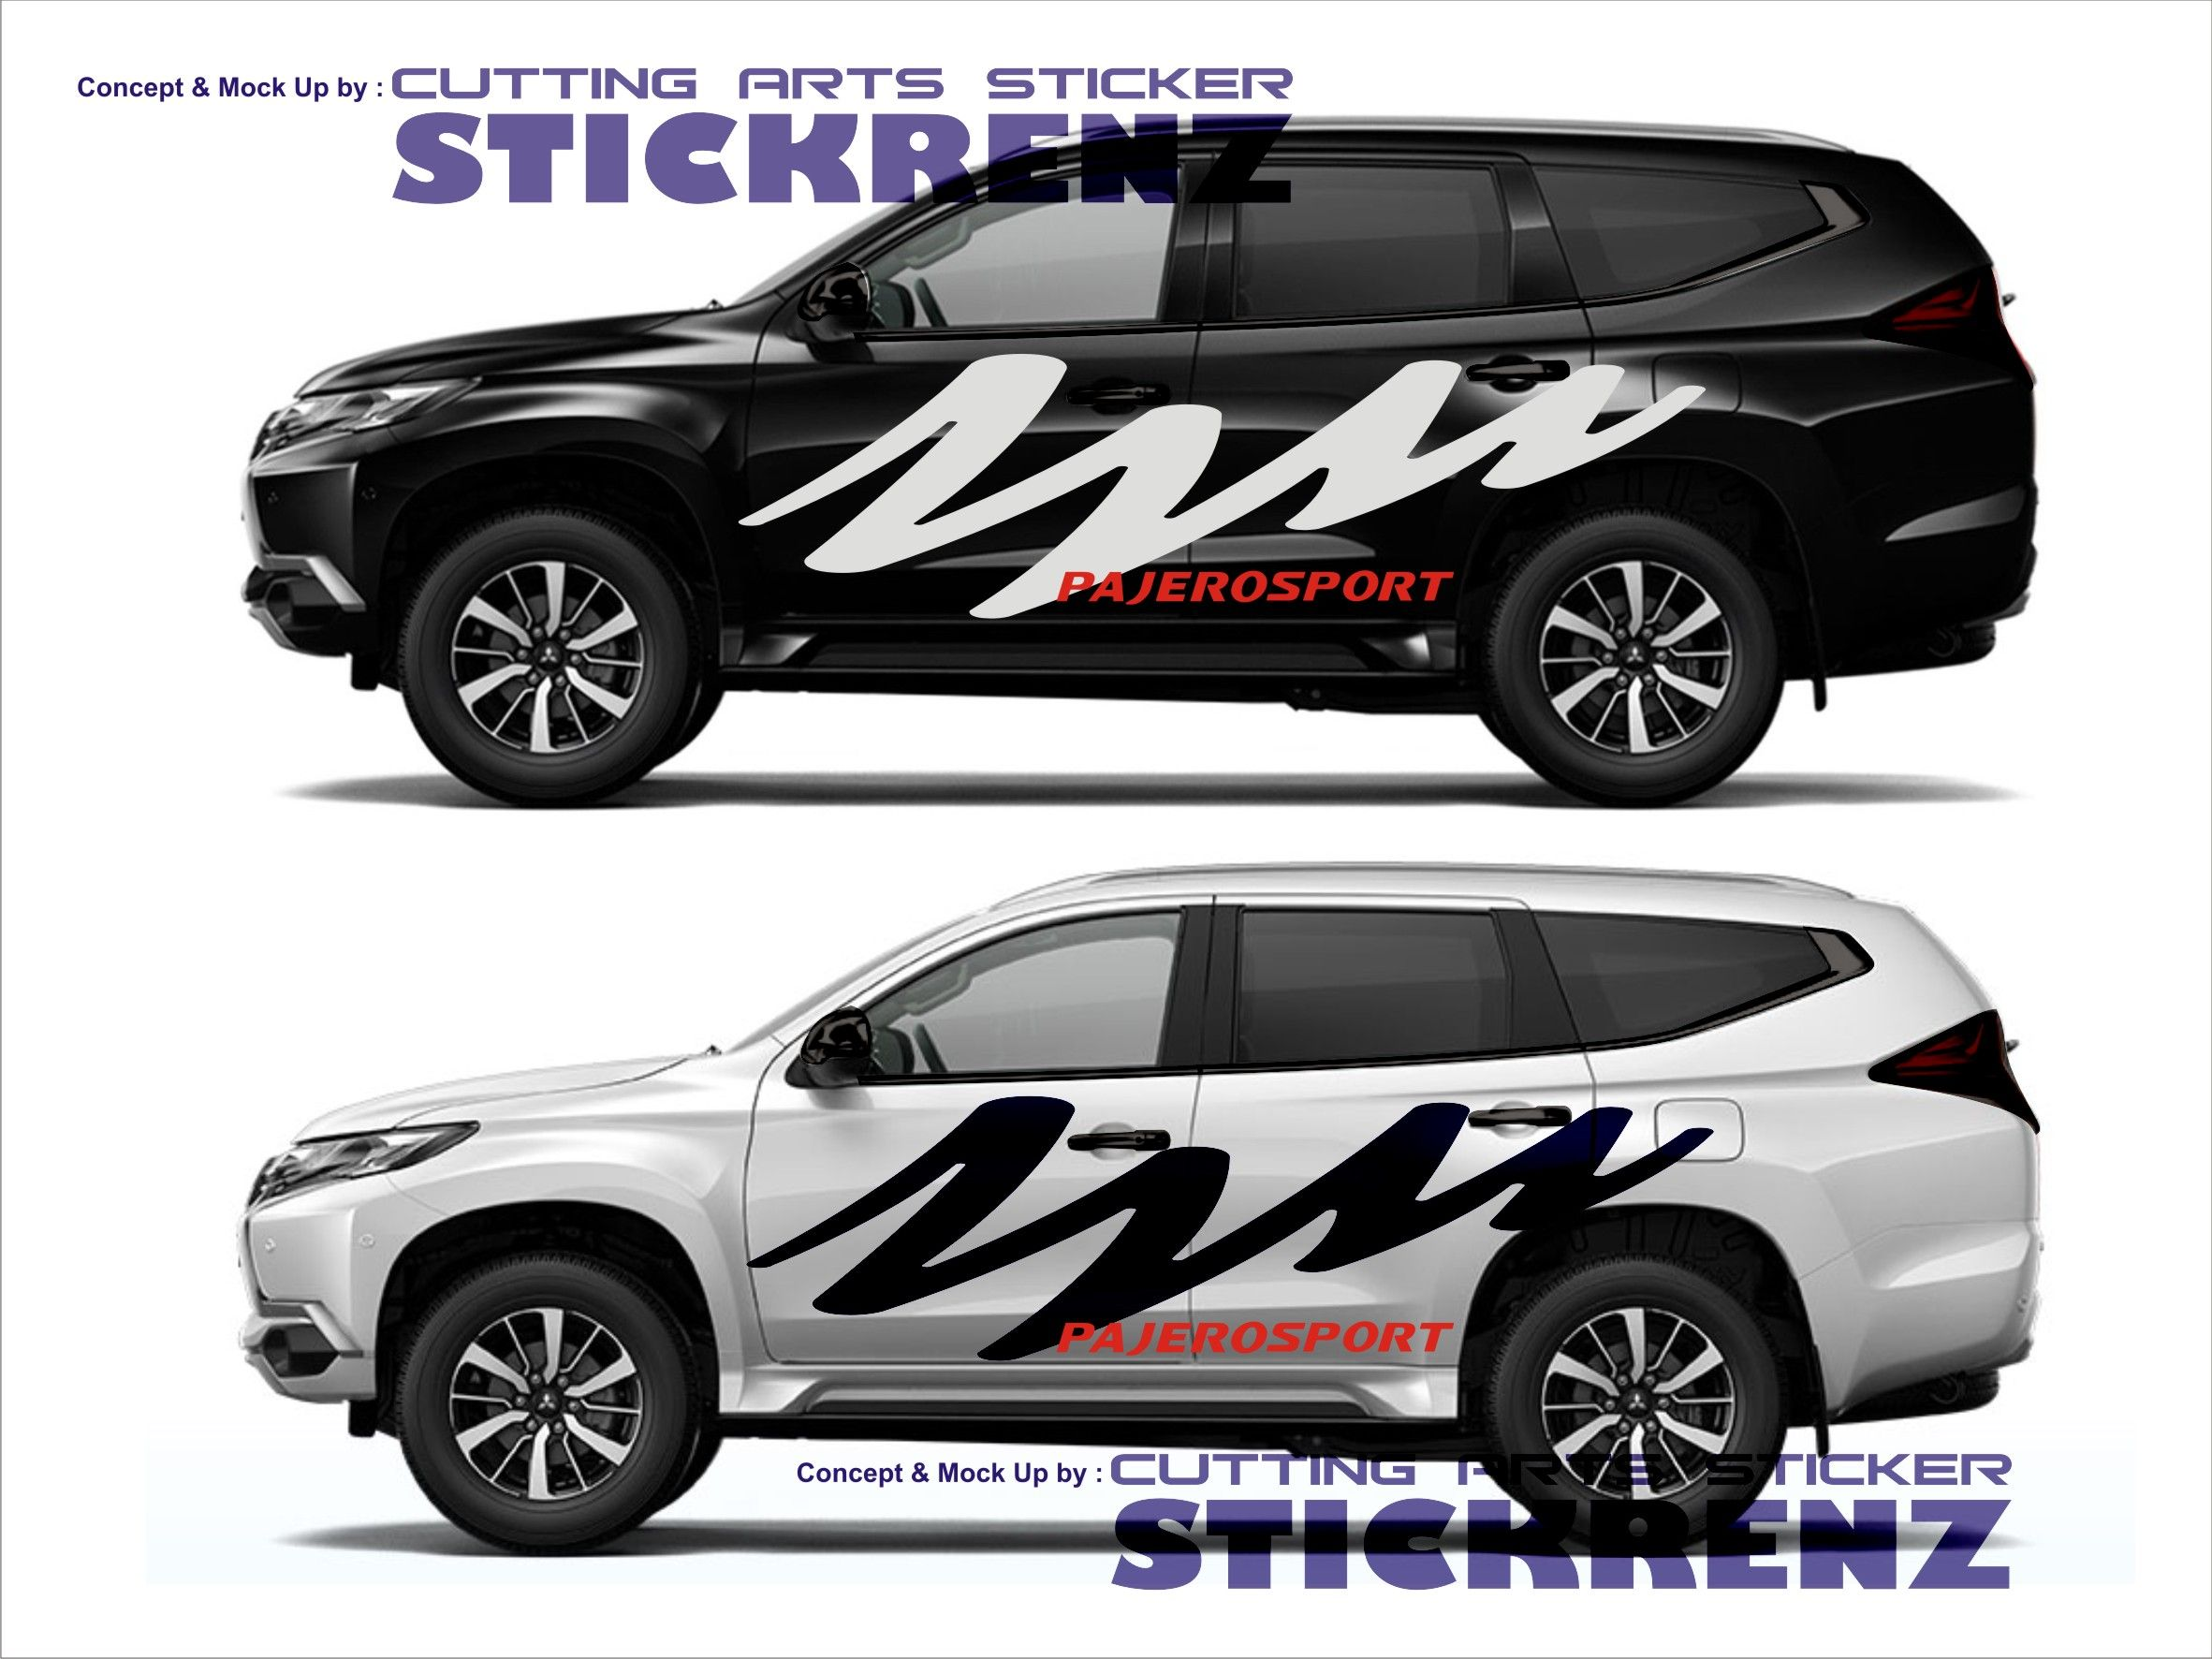 Custom Car Decals: Car Custom Side Cutting Sticker Concept